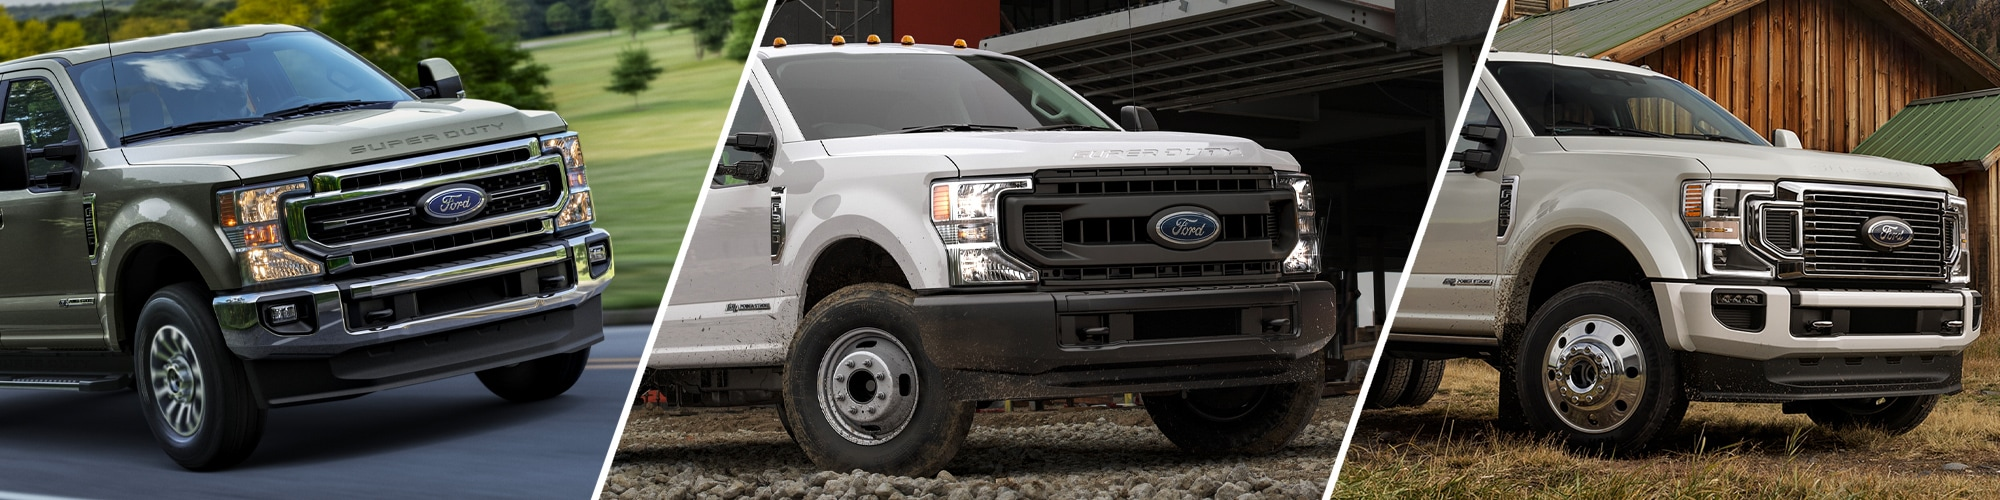 Donley Ford Galion >> 2020 Ford Super Duty Series | Donley Ford of Galion, Ford Trucks